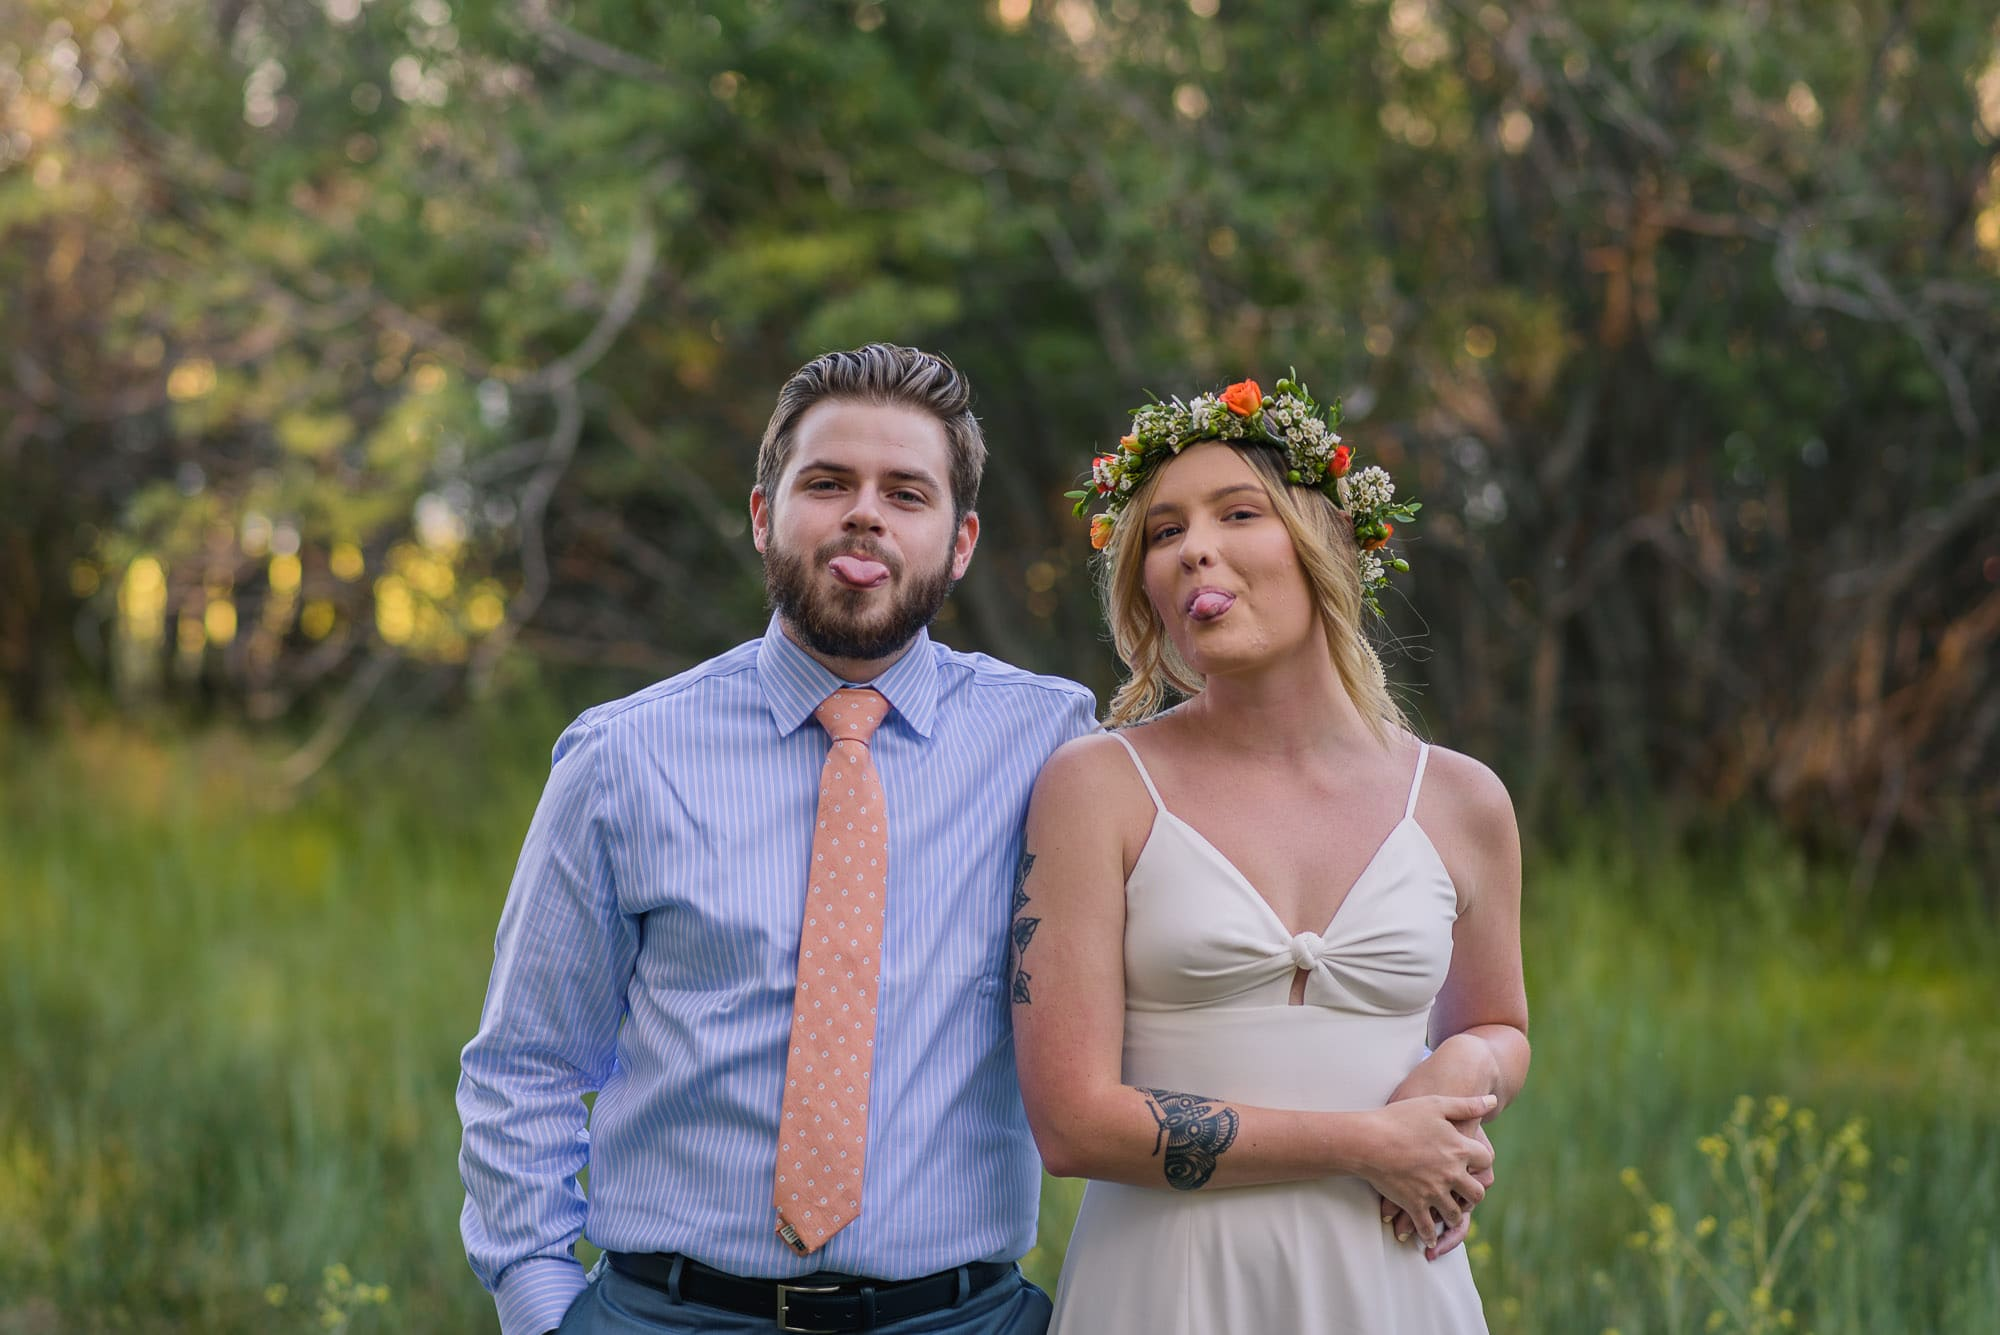 012_Alan_and_Heidi_Kensey_Josh_Big_Bear_Elopement